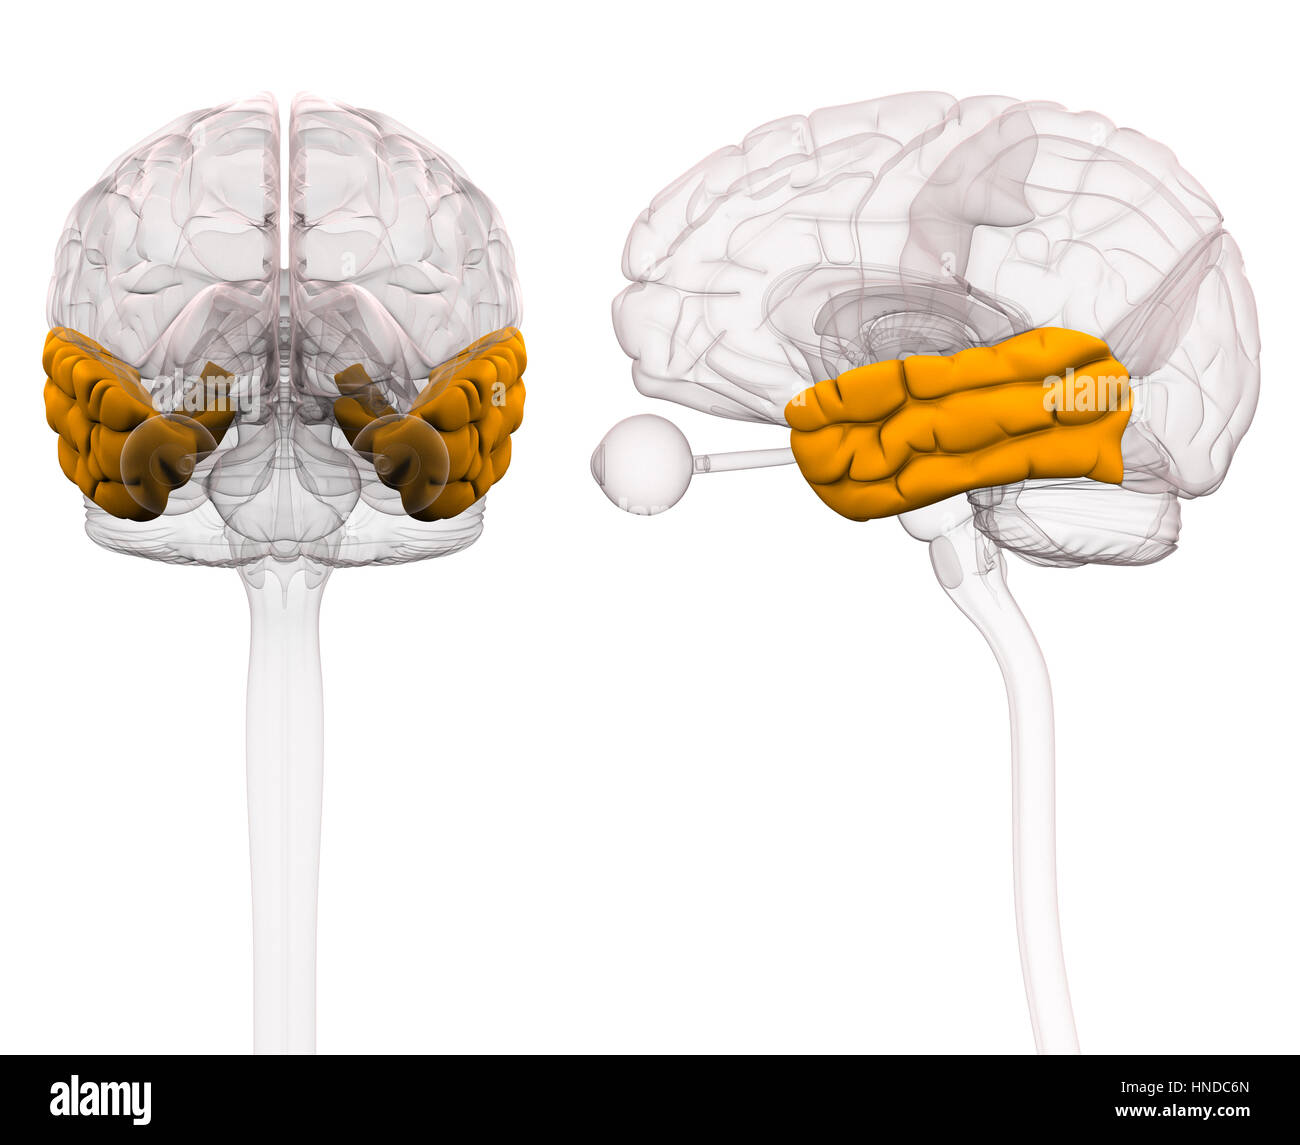 Anatomie des Gehirns Temporallappen - 3D-Illustration Stockfoto ...